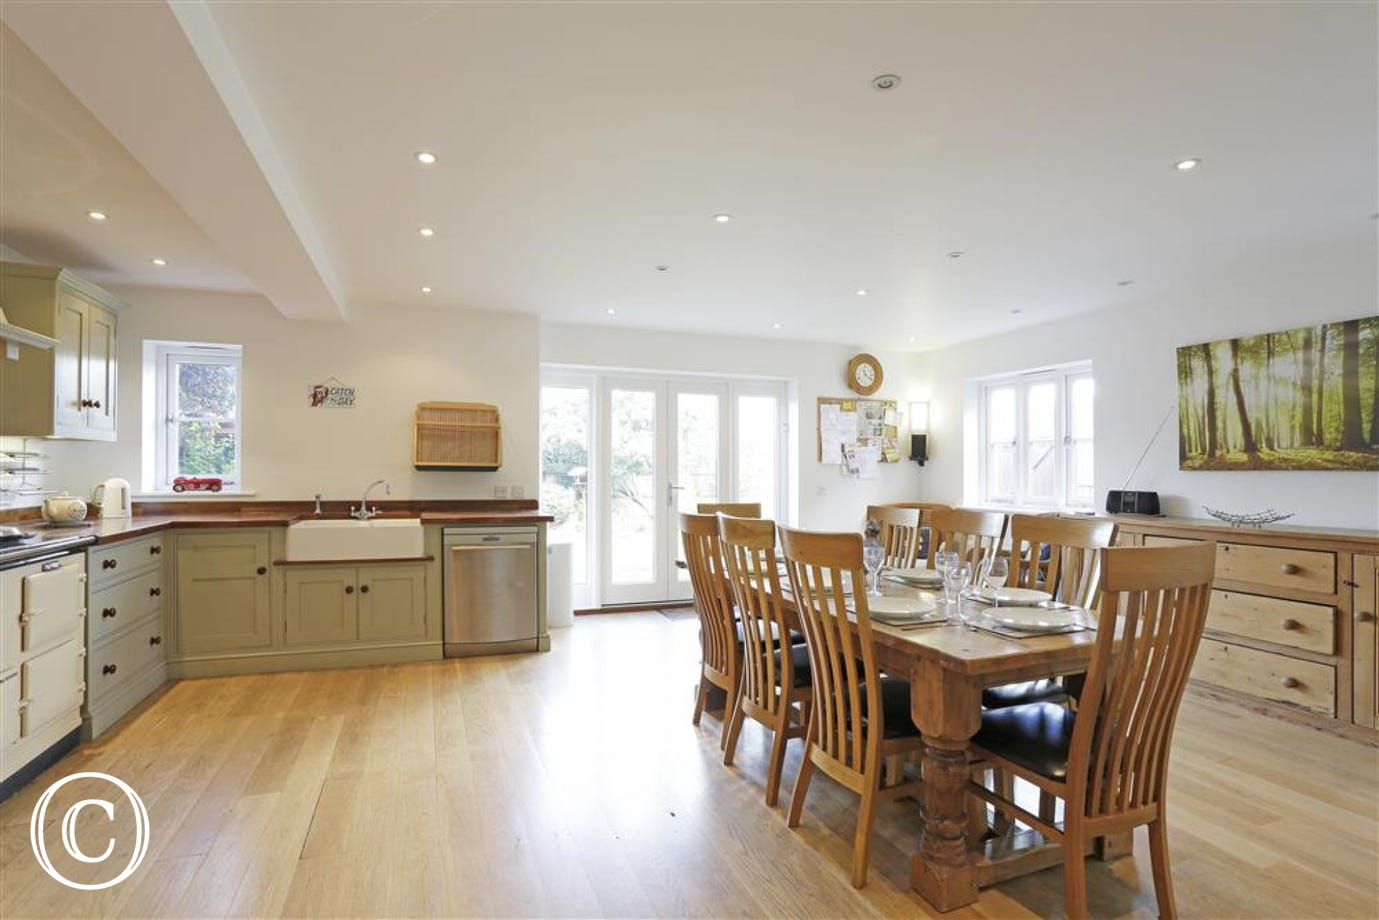 The open plan kitchen and dining area is light and airy with a view of the garden and provides access to the wet room.